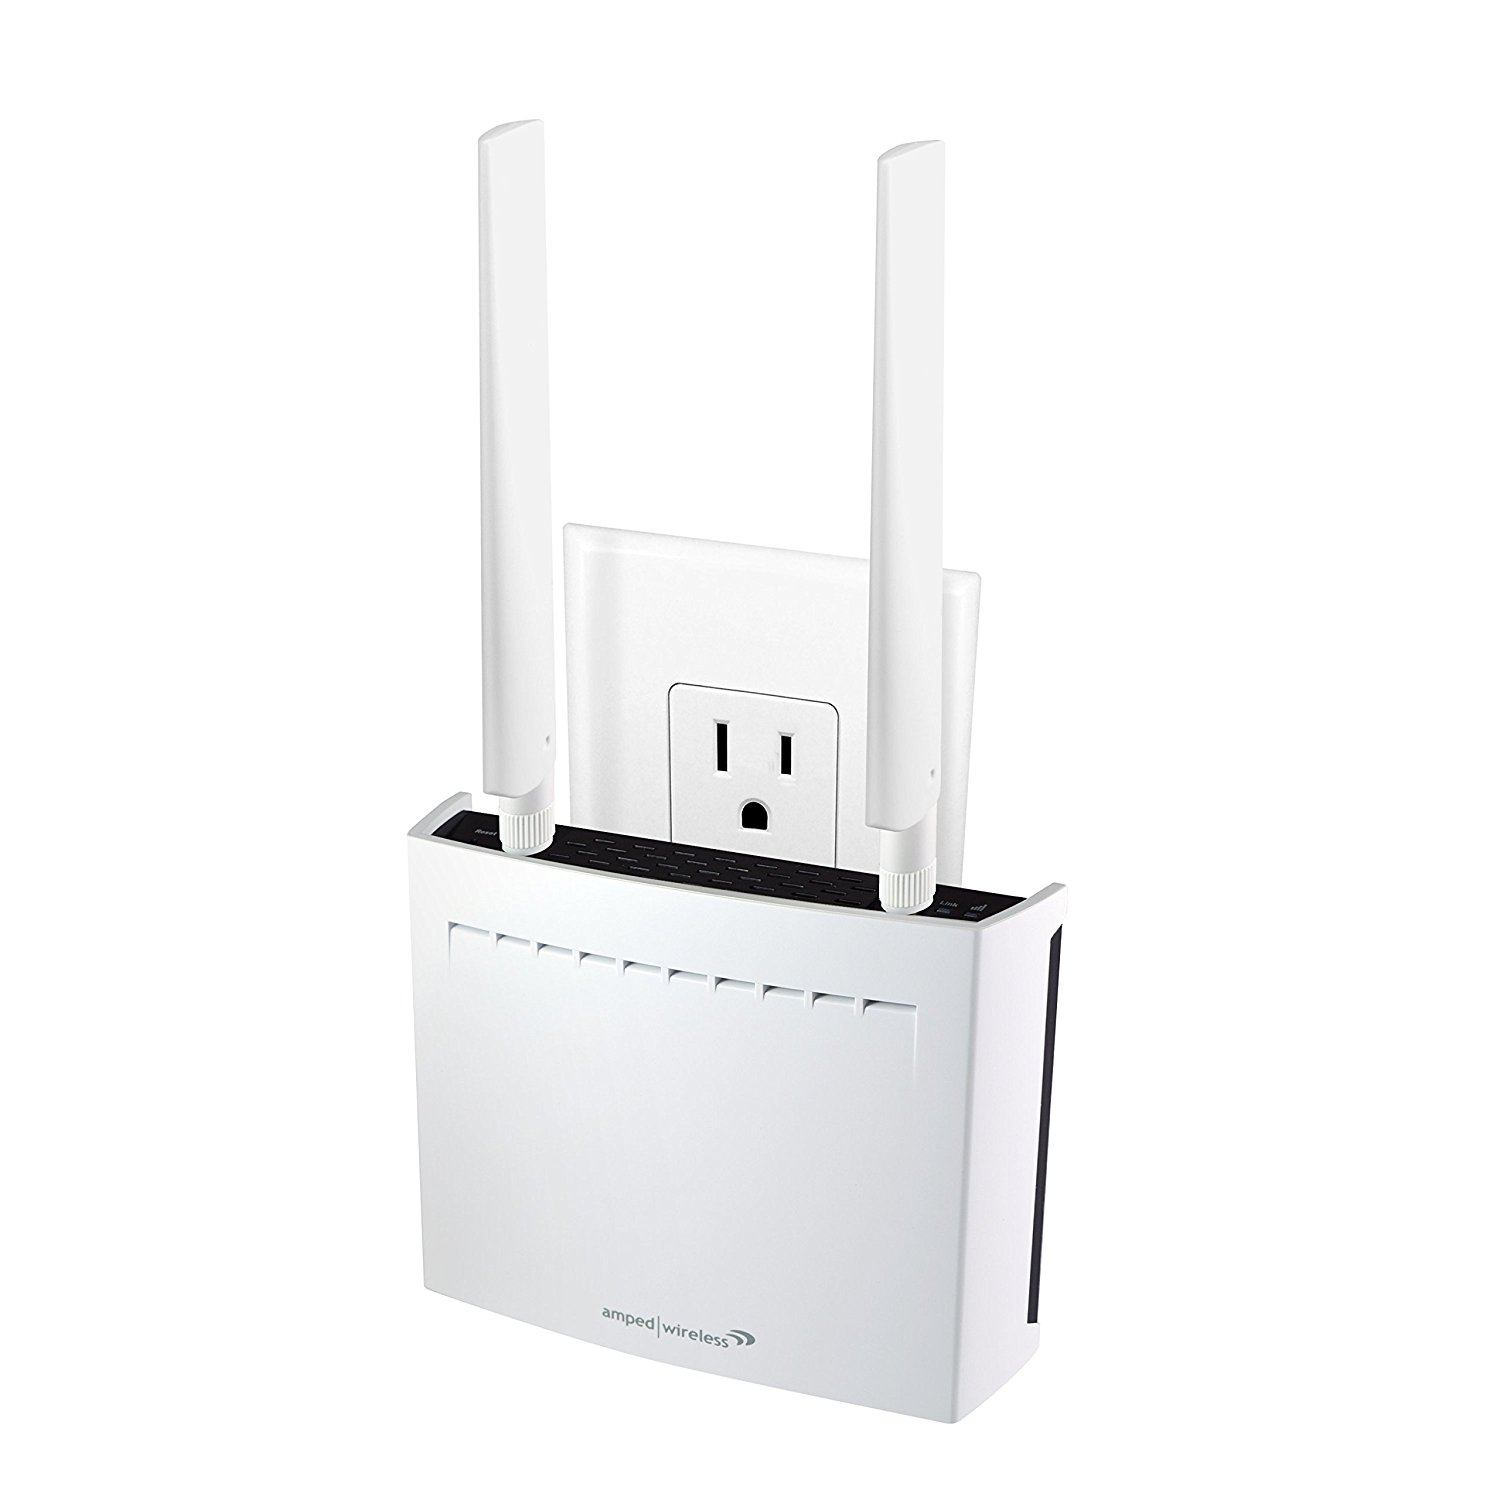 Amped High Power PlugIn AC2600 WiFi Range Extender